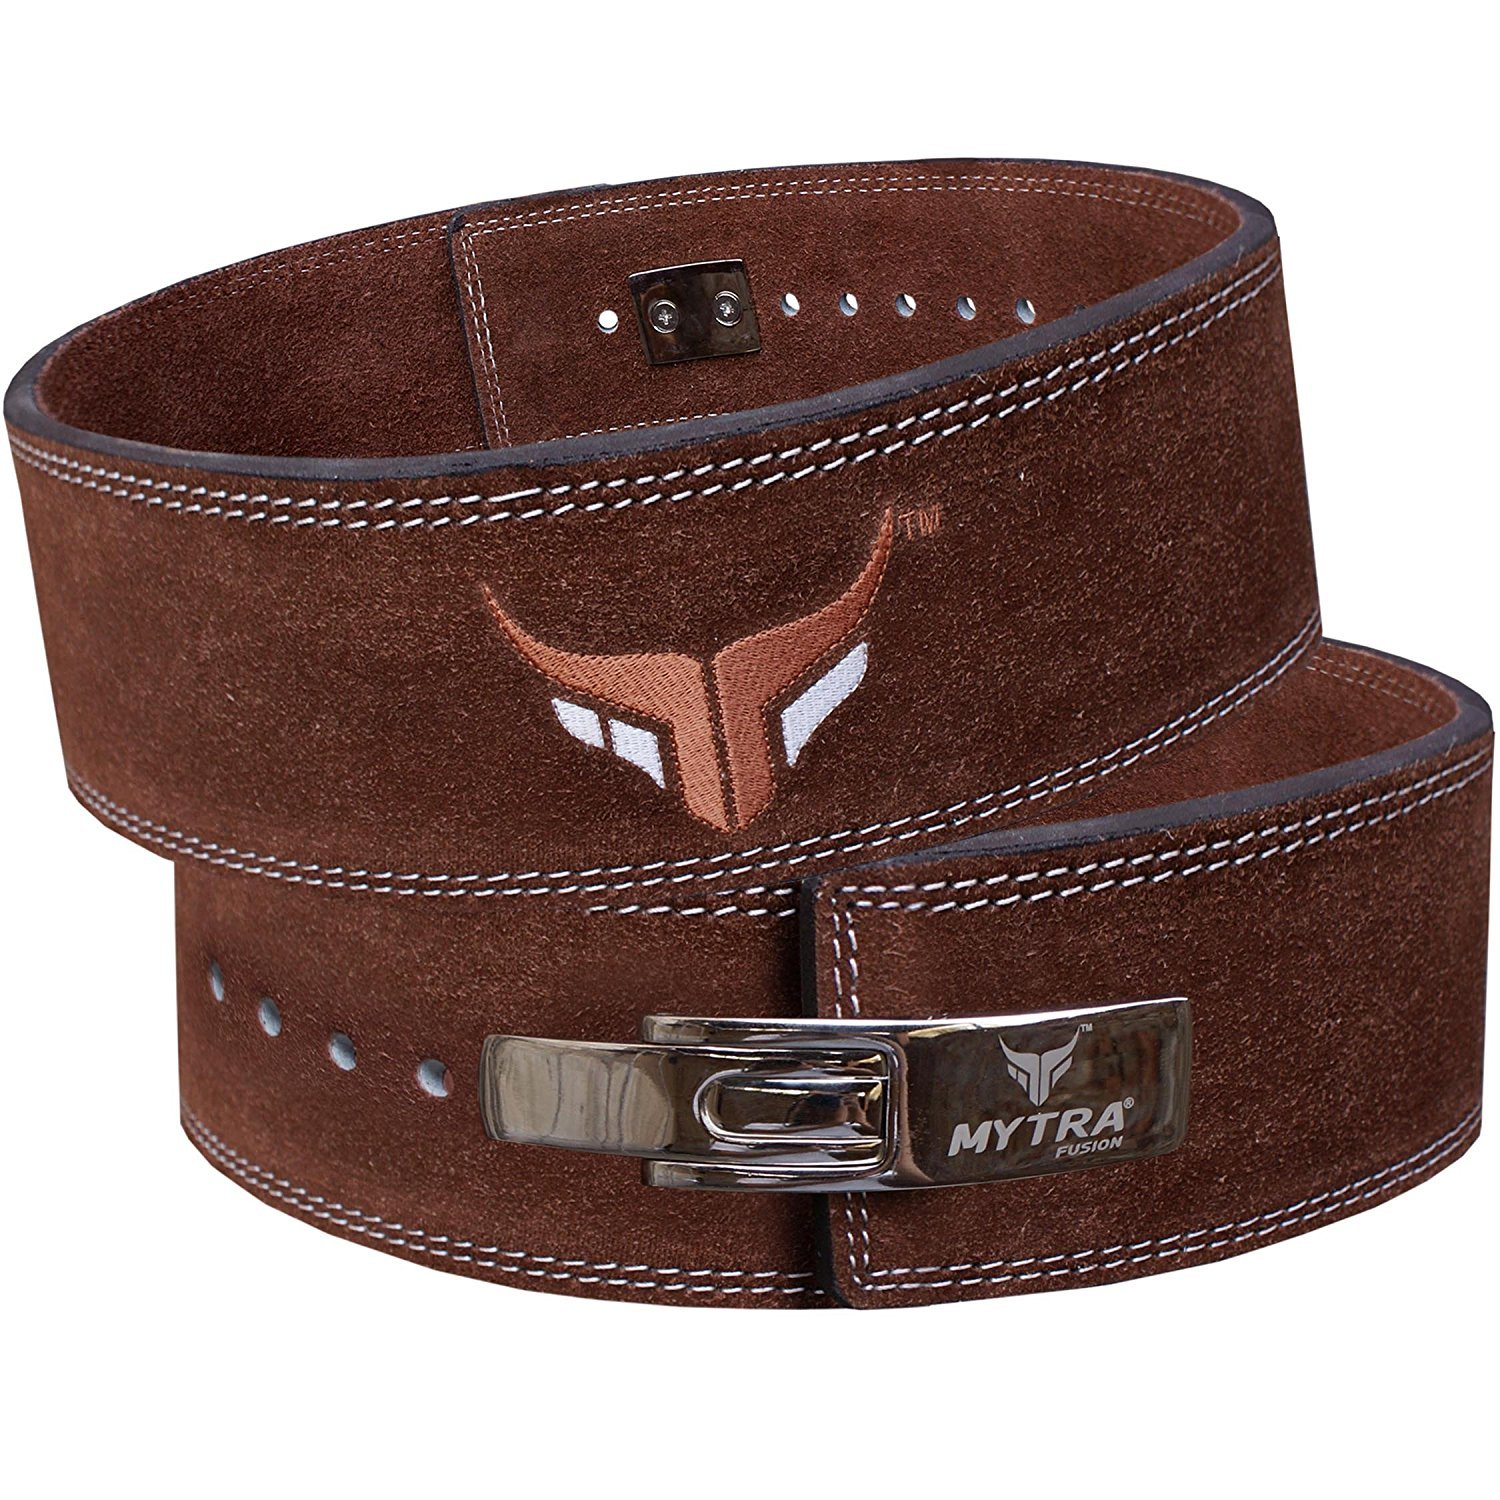 Mytra Fusion Leather courted Power Lifting Back Support Belt Weight Lifting Belt Men Weight Lifting Belt Women Weight Lifting Belt Weight Lifting Belt Lever Weight Lifting Belt Powerlifting Belt.